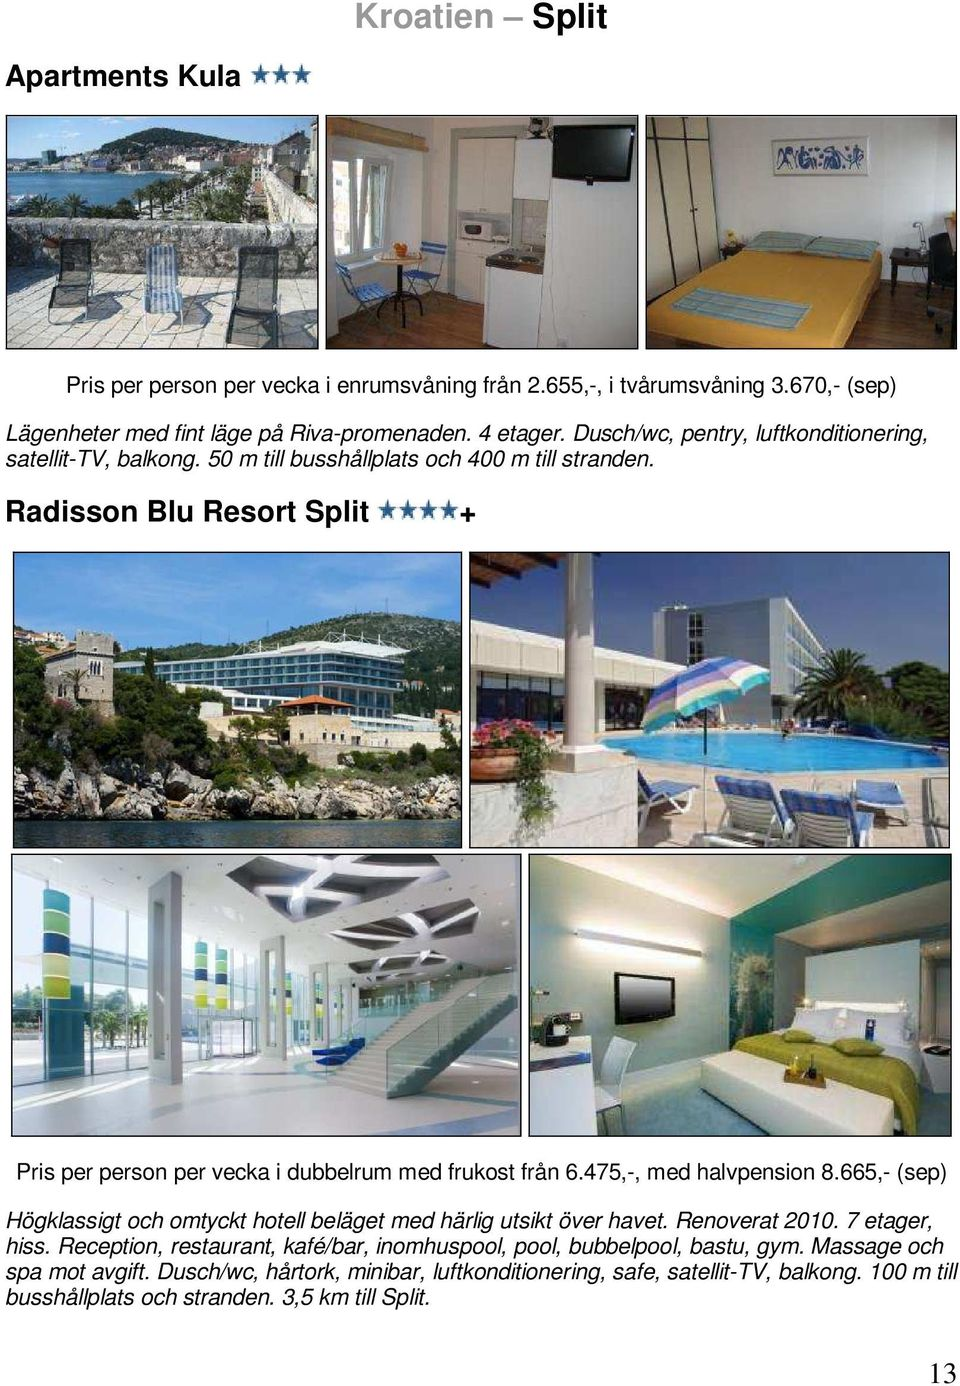 Radisson Blu Resort Split + Pris per person per vecka i dubbelrum med frukost från 6.475,-, med halvpension 8.